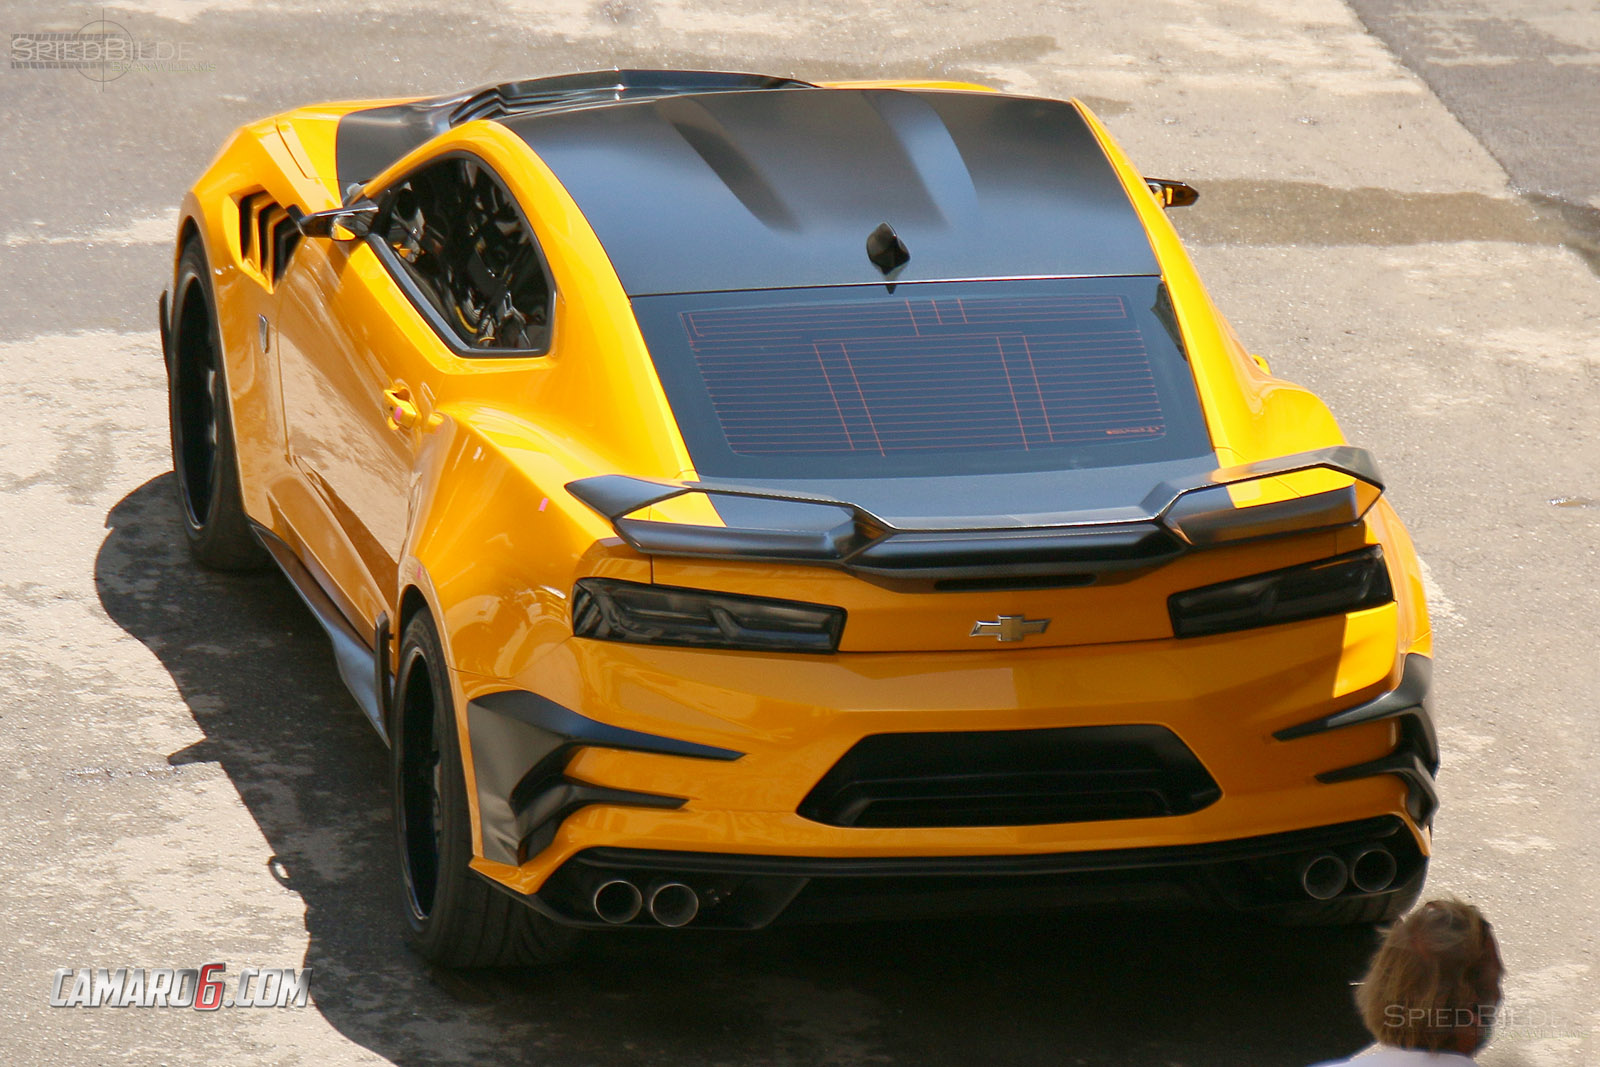 First Full Look At New Bumblebee Camaro For Transformers 5 Camaro6